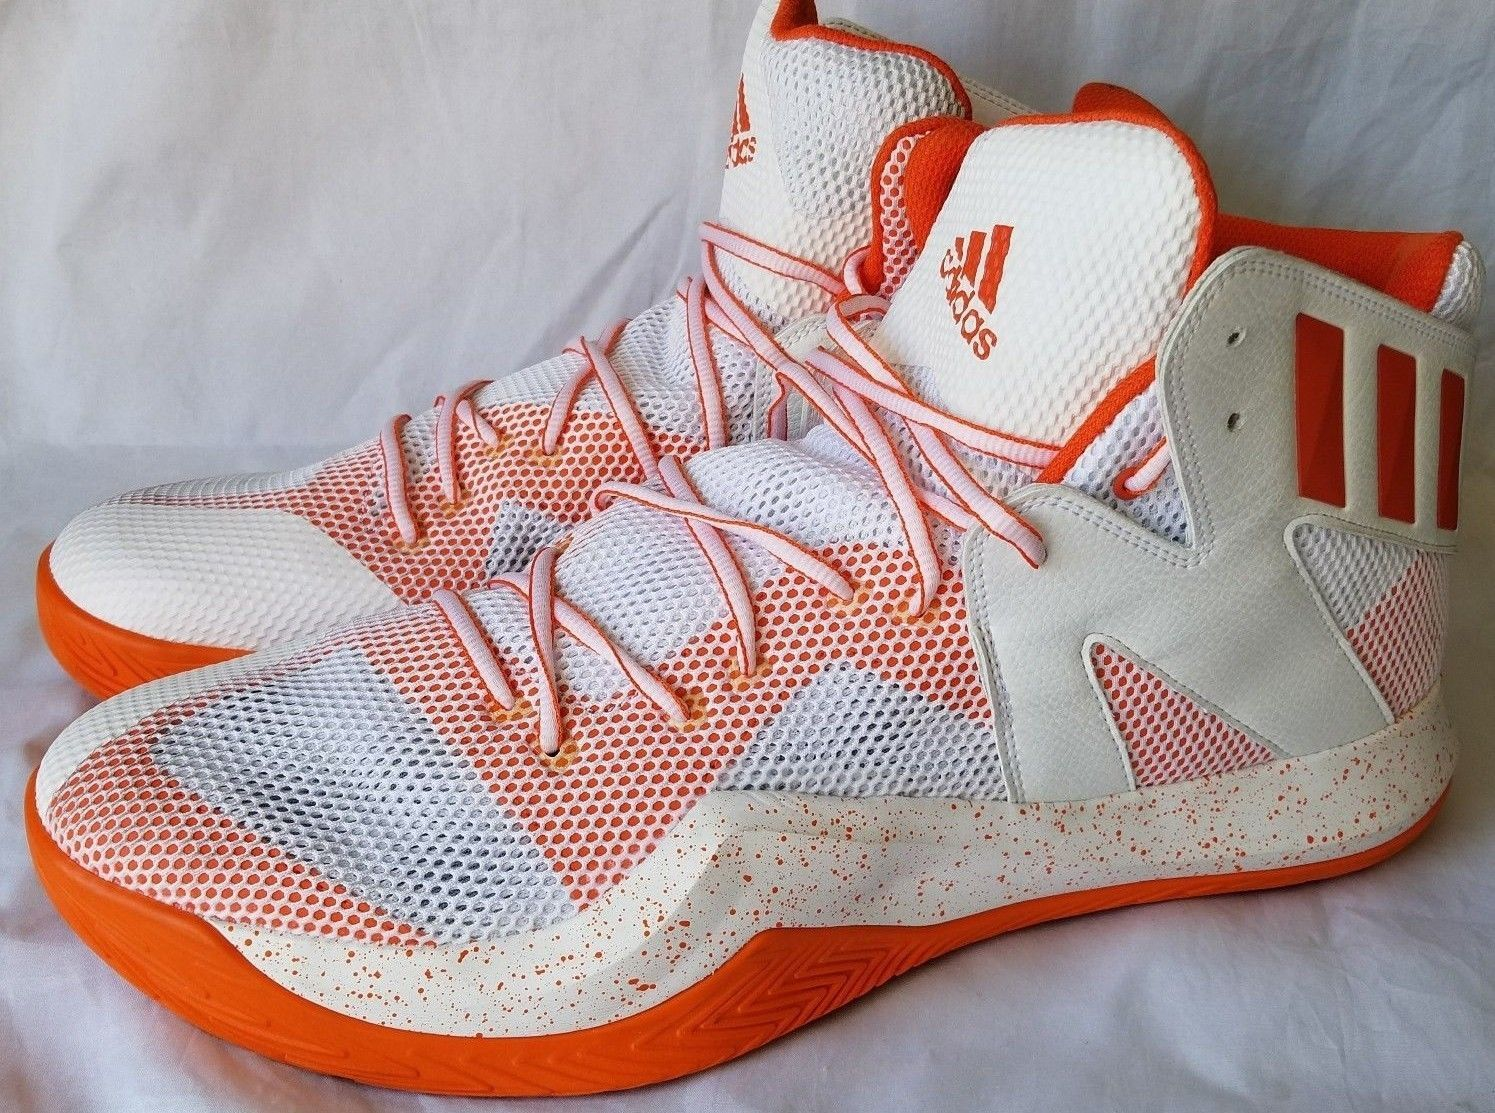 ed2b1e58d9bd6 Adidas Men s White Orange Crazy Bounce and 50 similar items. 57